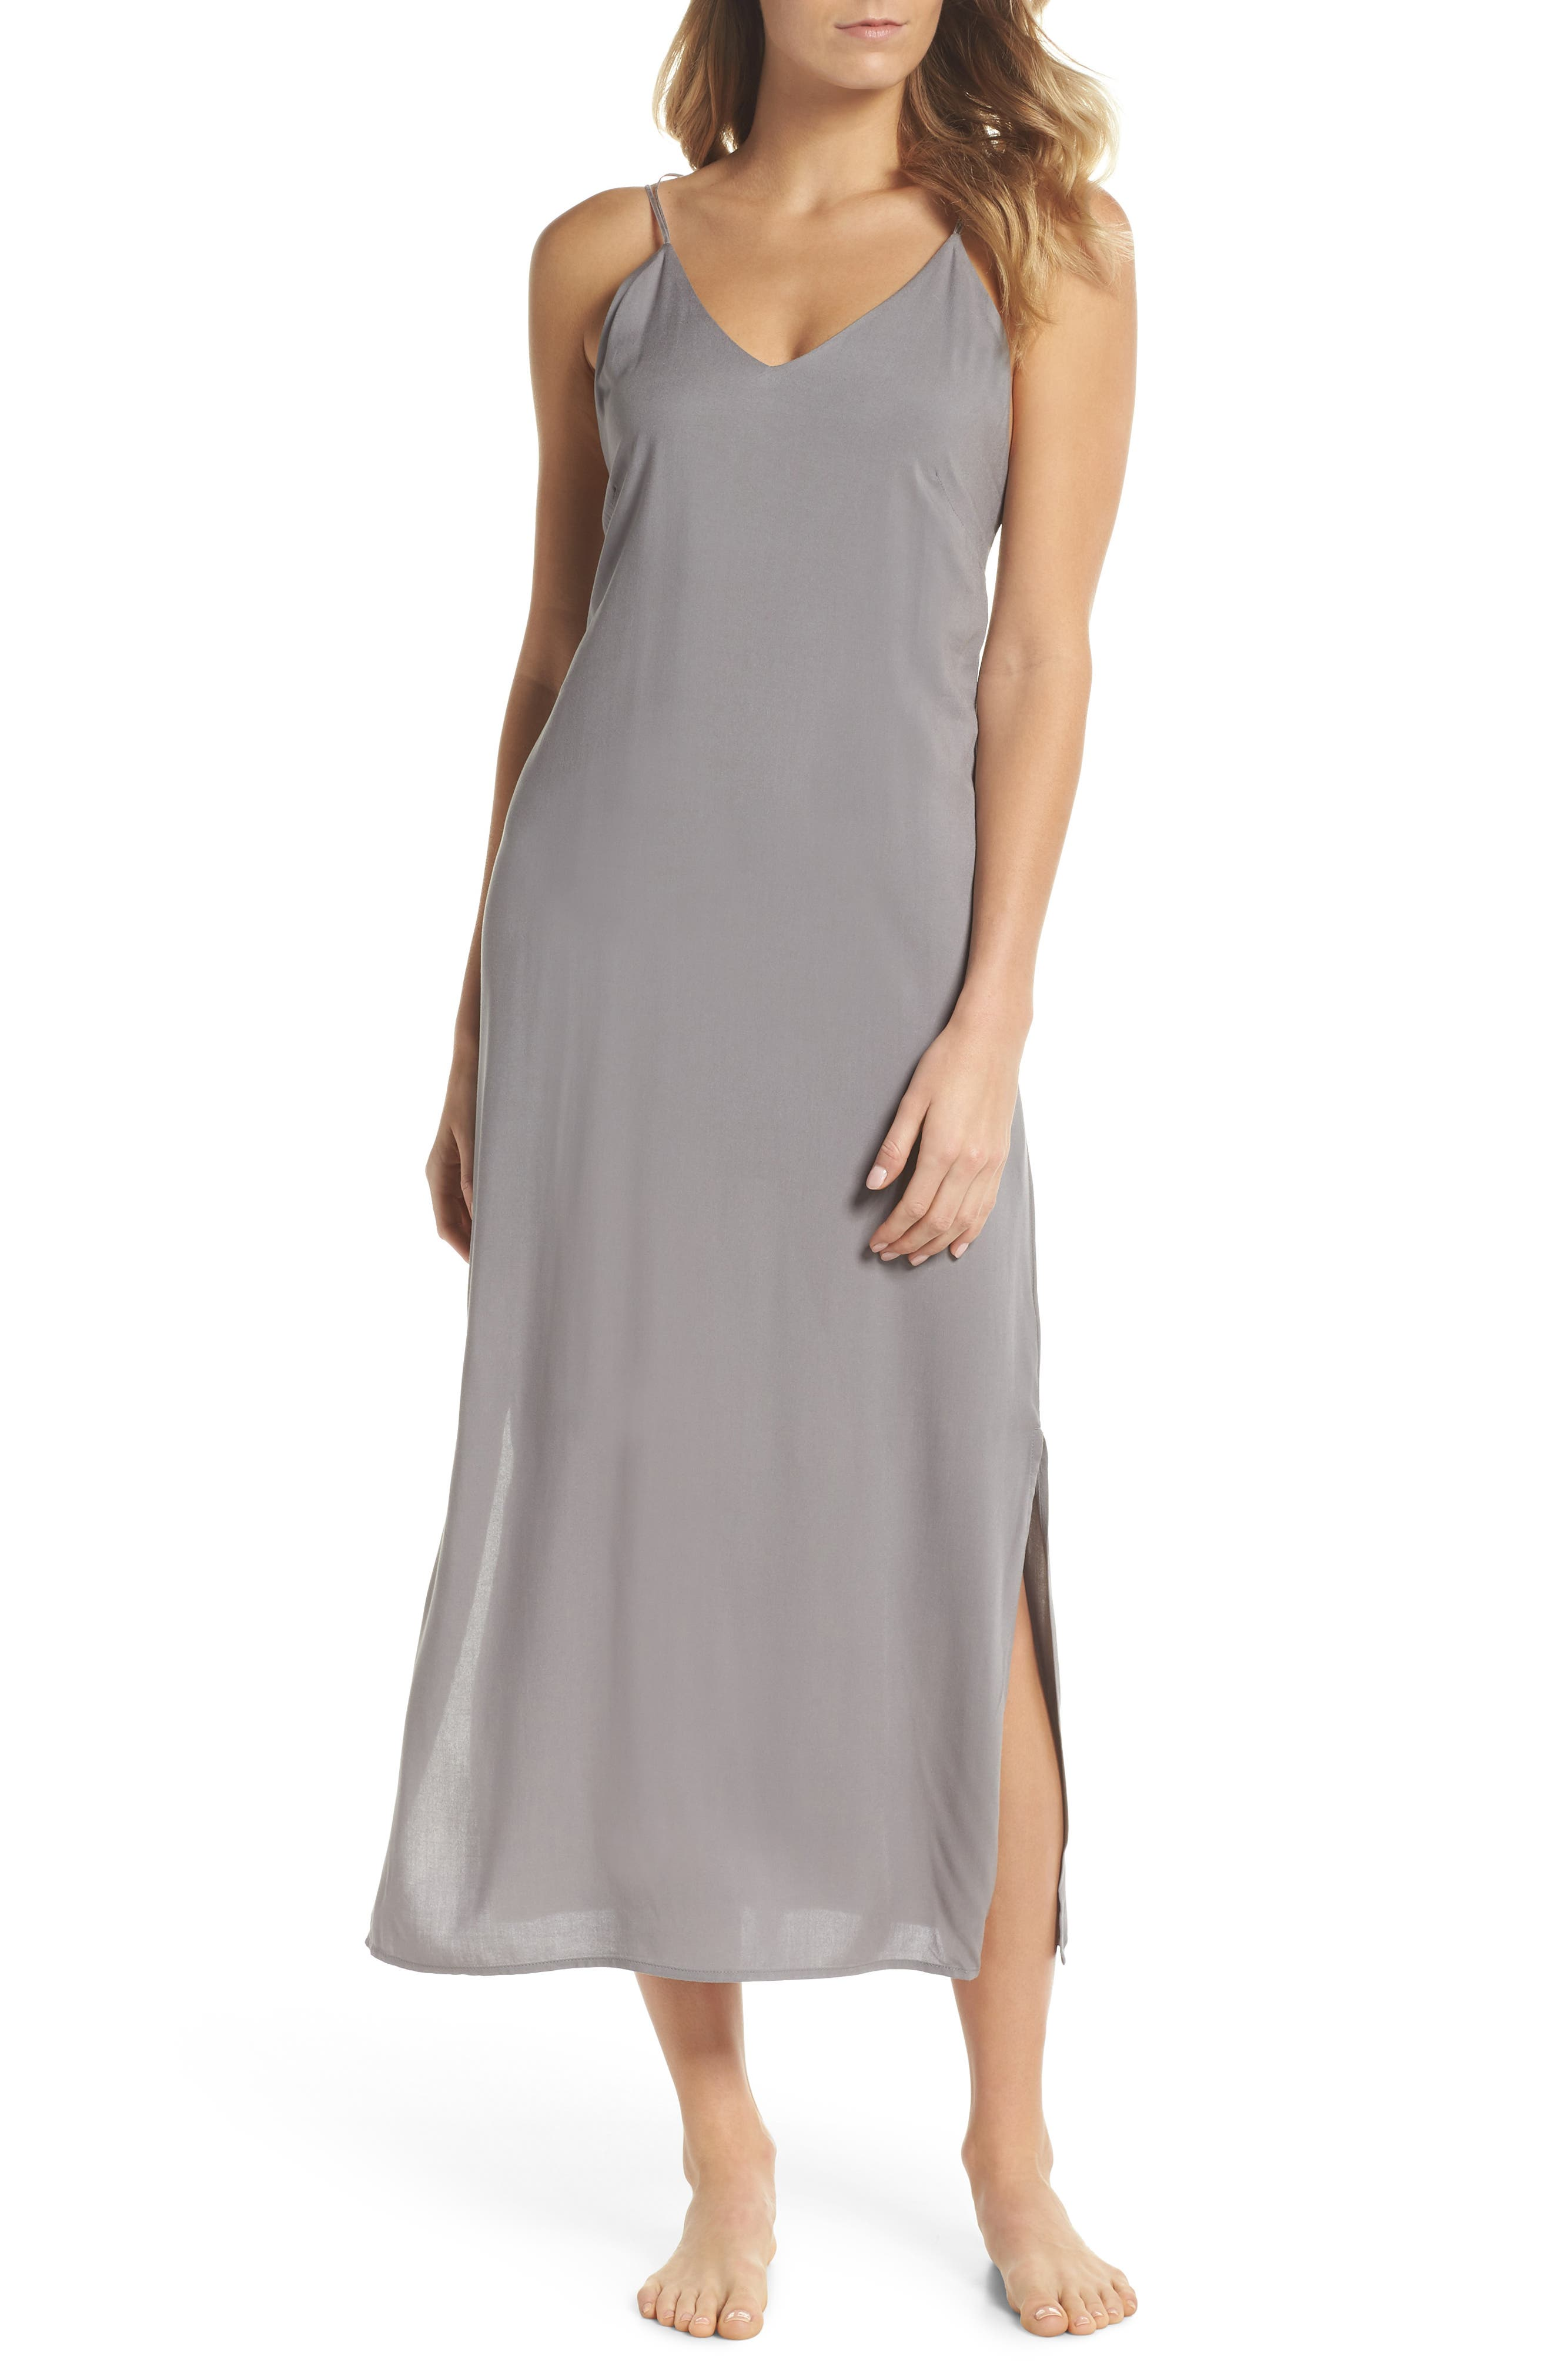 Strappy Nightgown,                         Main,                         color, Aerial Gray